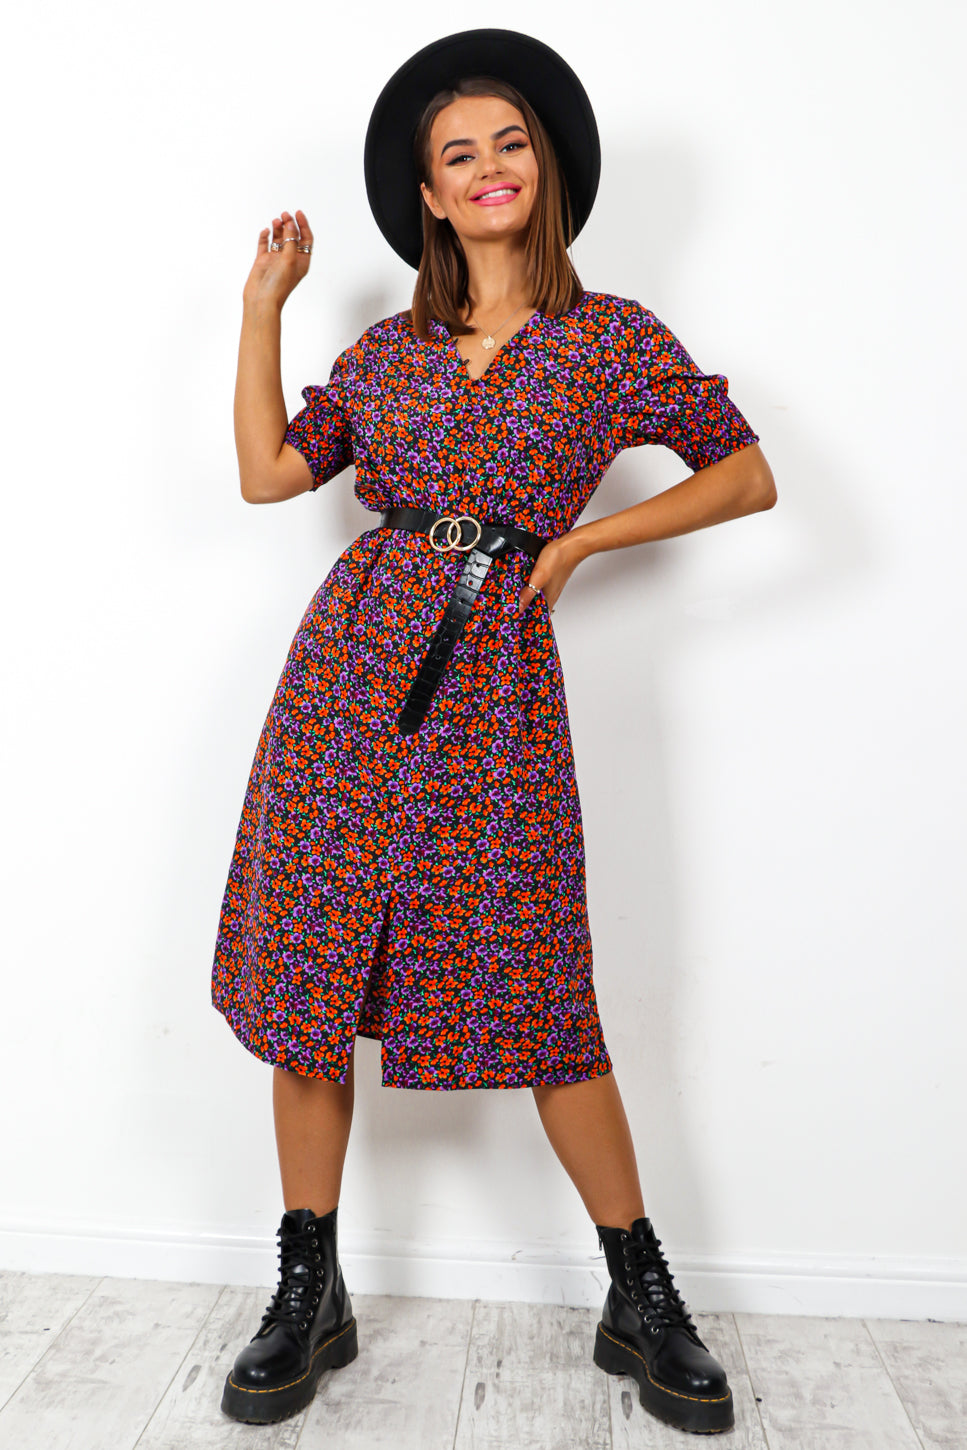 Wait A Midi - Black Purple Orange Floral Print Midi Dress